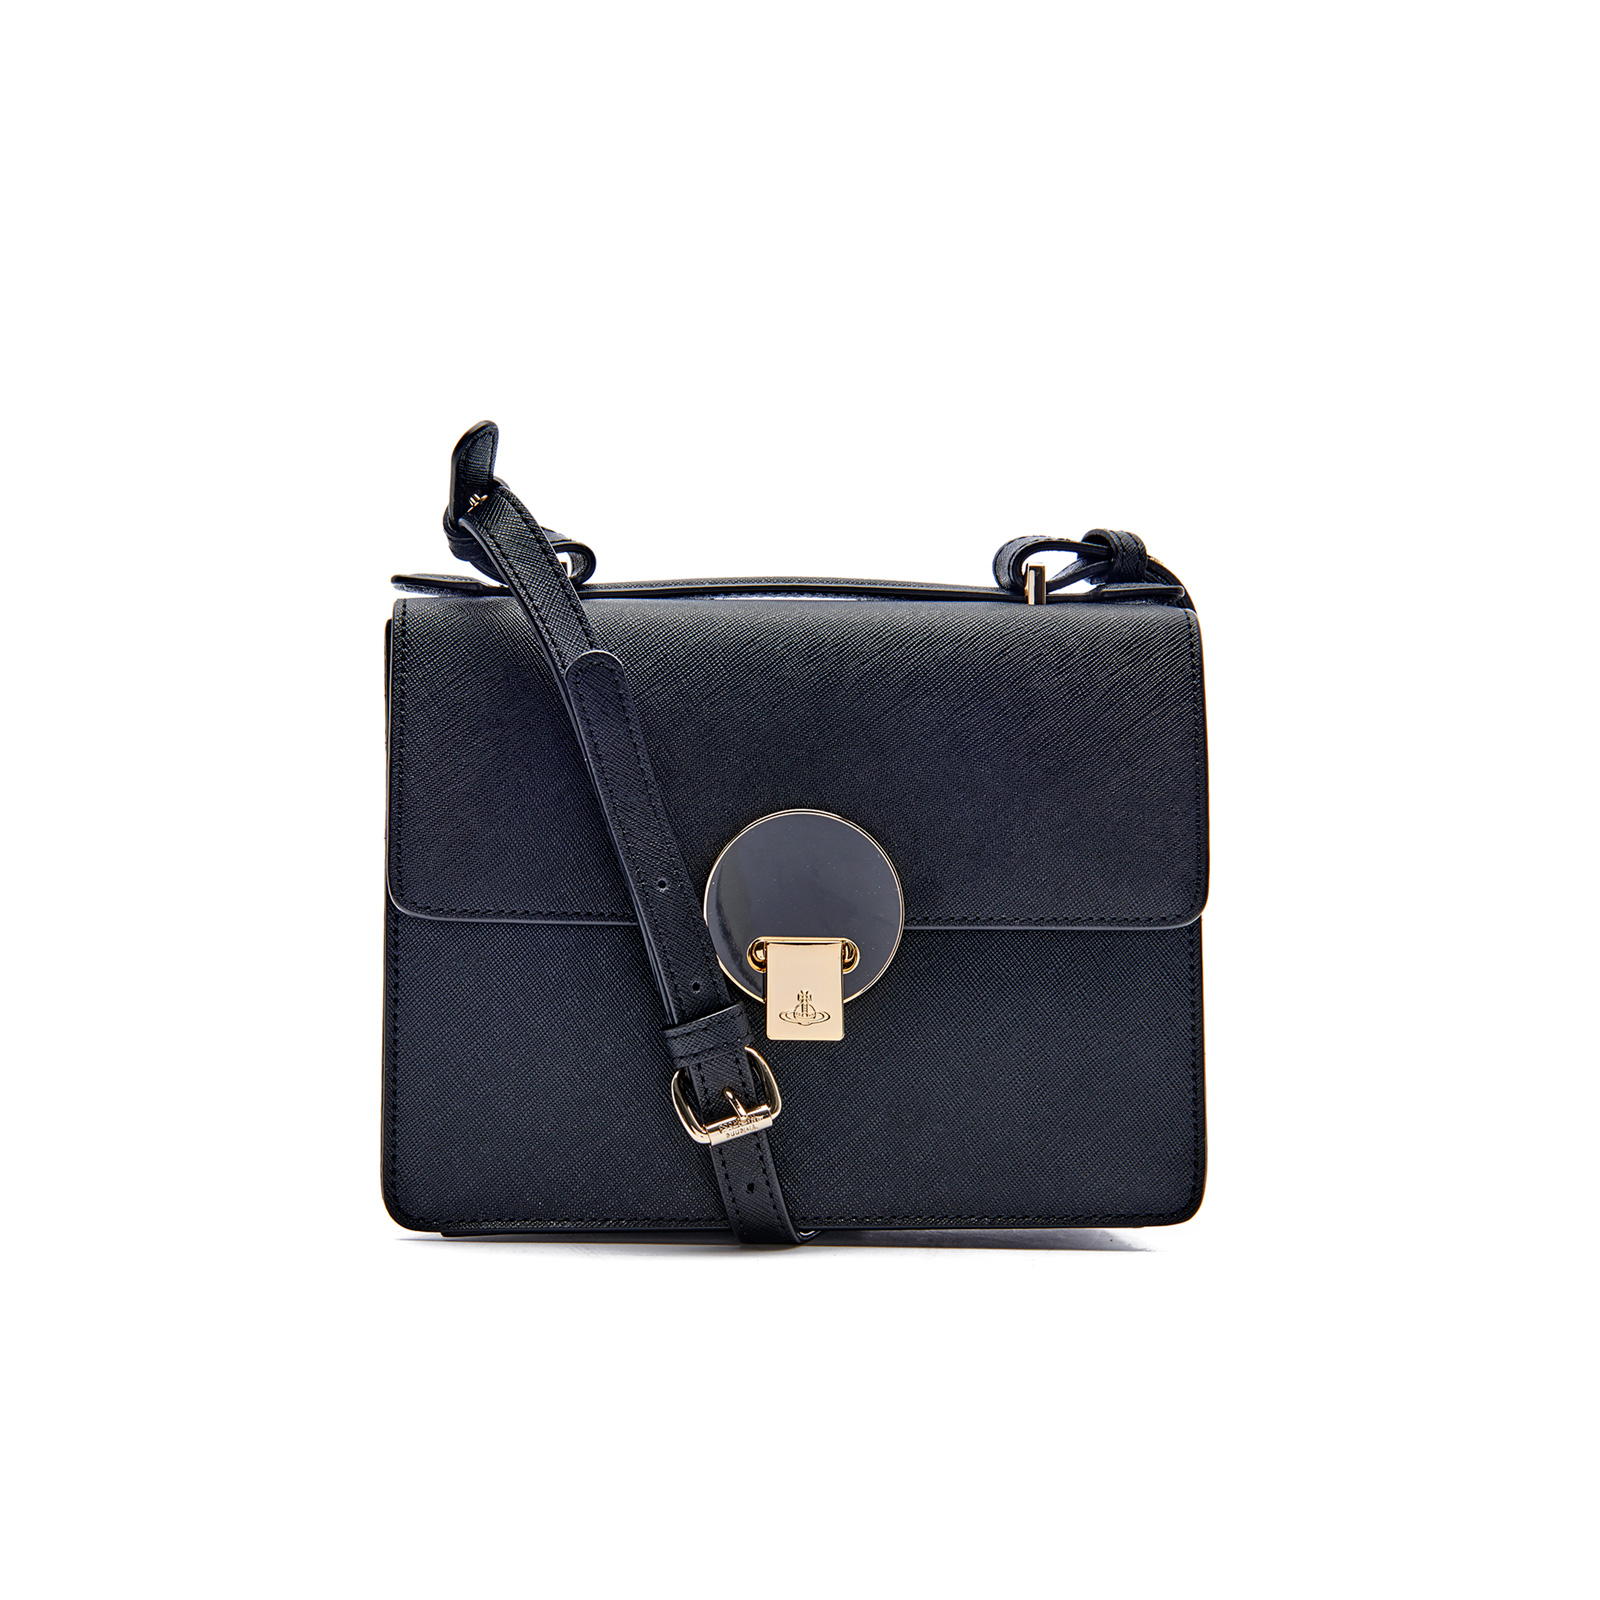 03e84bedc12f Vivienne Westwood Women s Opio Saffiano Leather Small Shoulder Bag - Black  - Free UK Delivery over £50